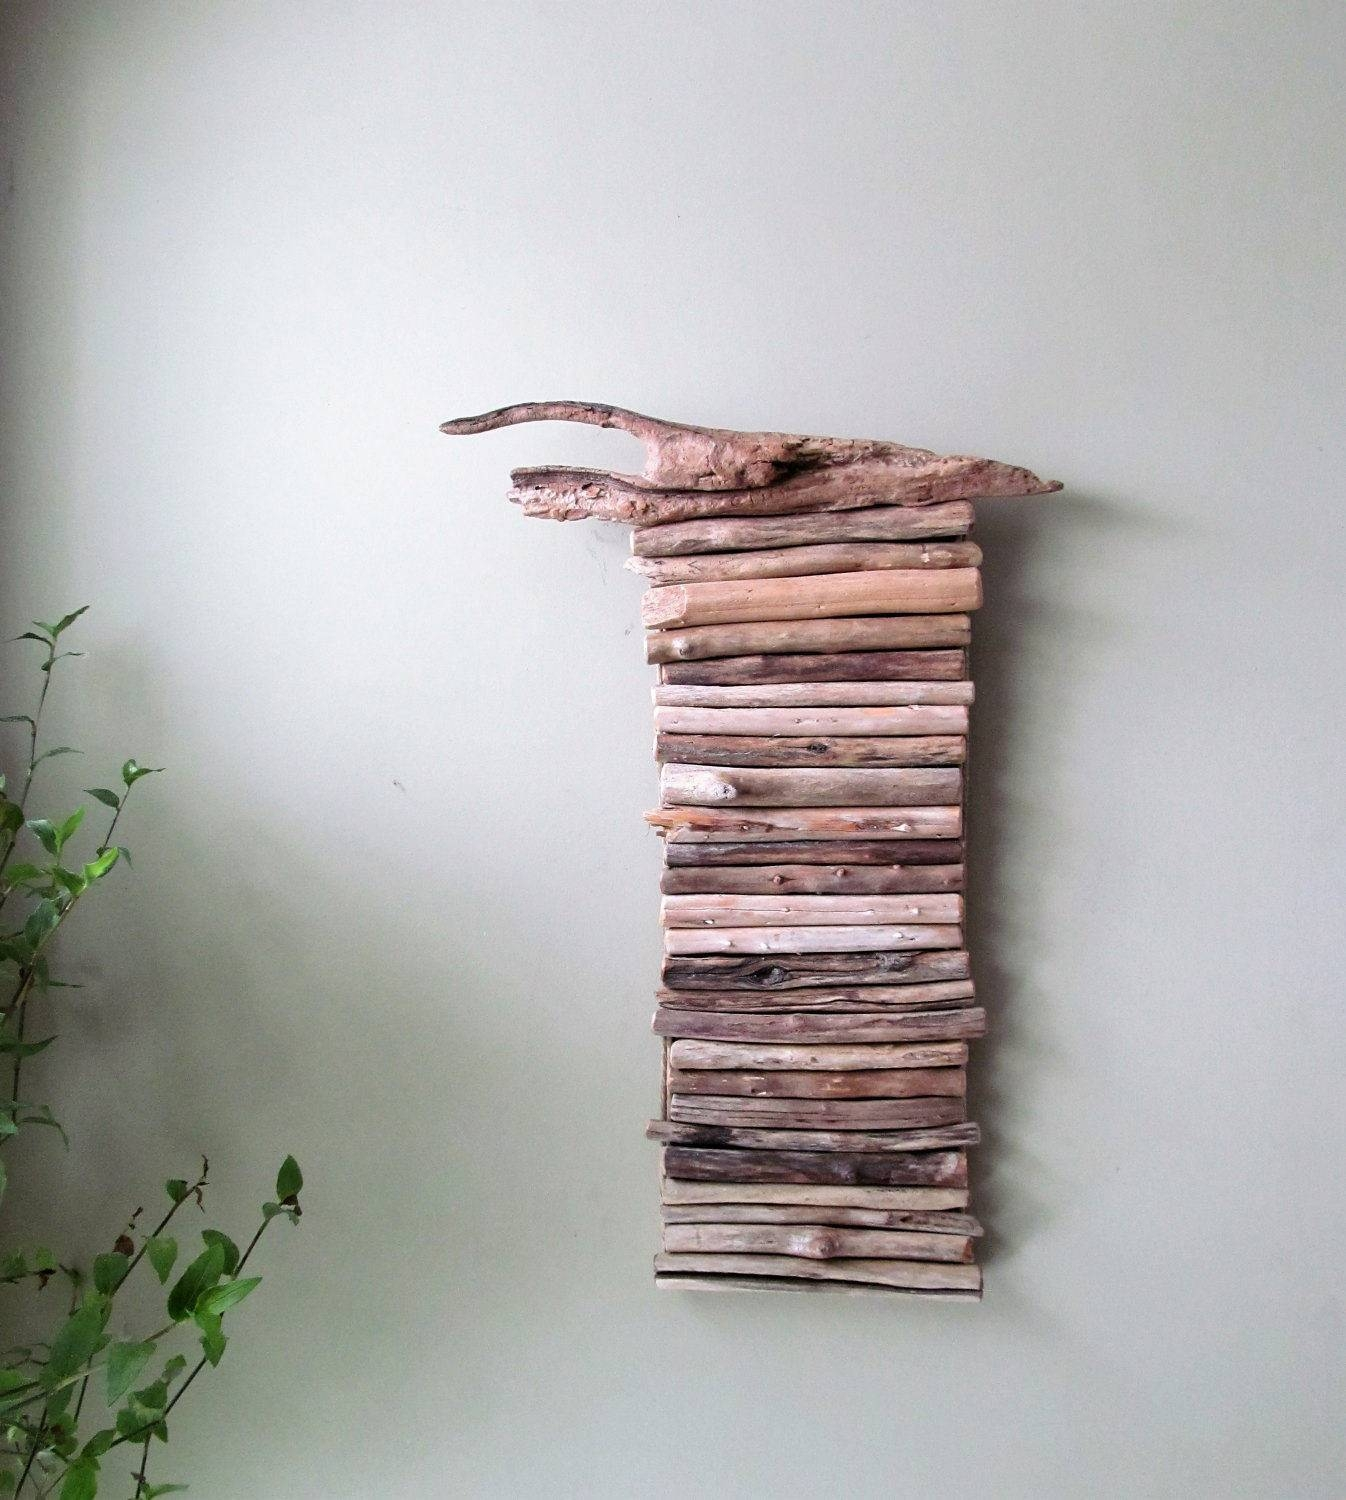 Astonishing Design Driftwood Wall Art Charming 25 Best Ideas About Throughout Newest Driftwood Wall Art For Sale (View 6 of 30)